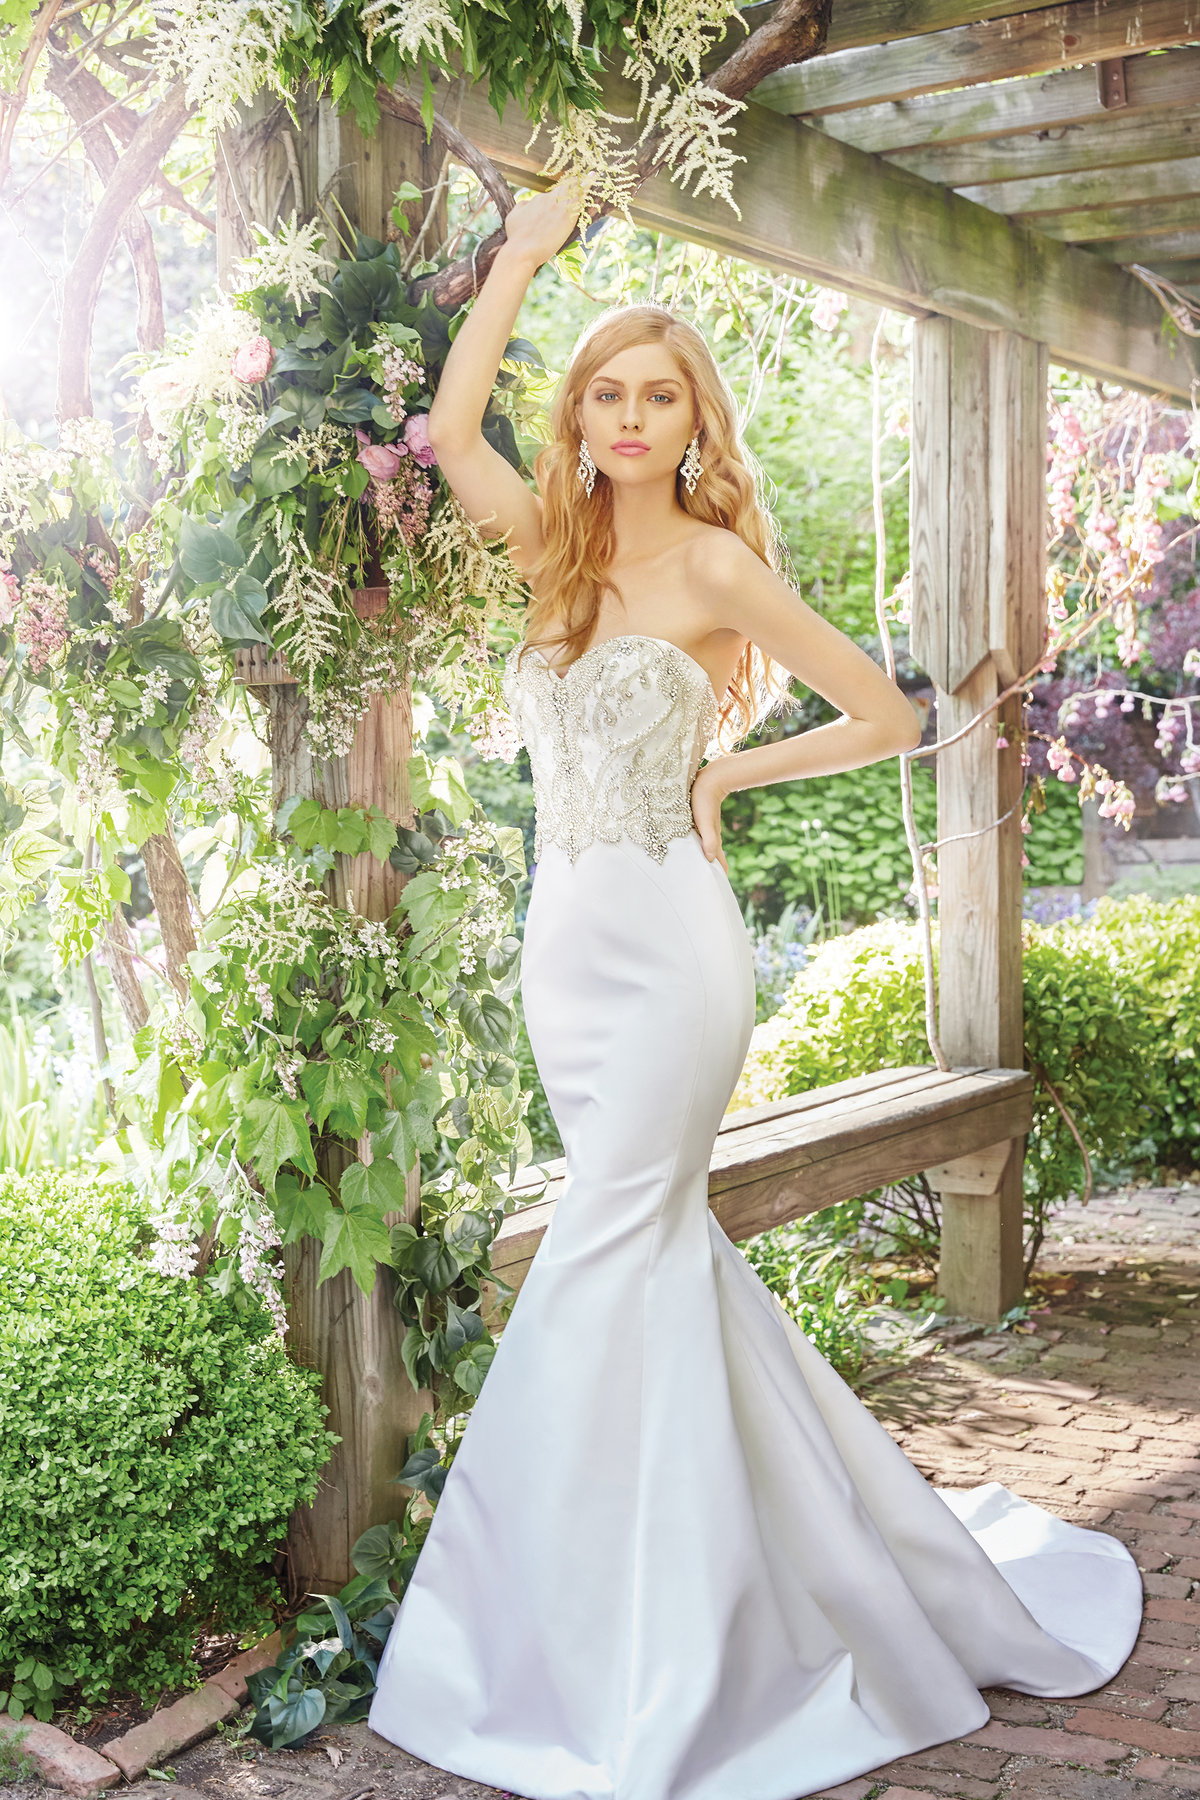 Bridal gowns and wedding dresses by jlm couture style 9660 ombrellifo Images